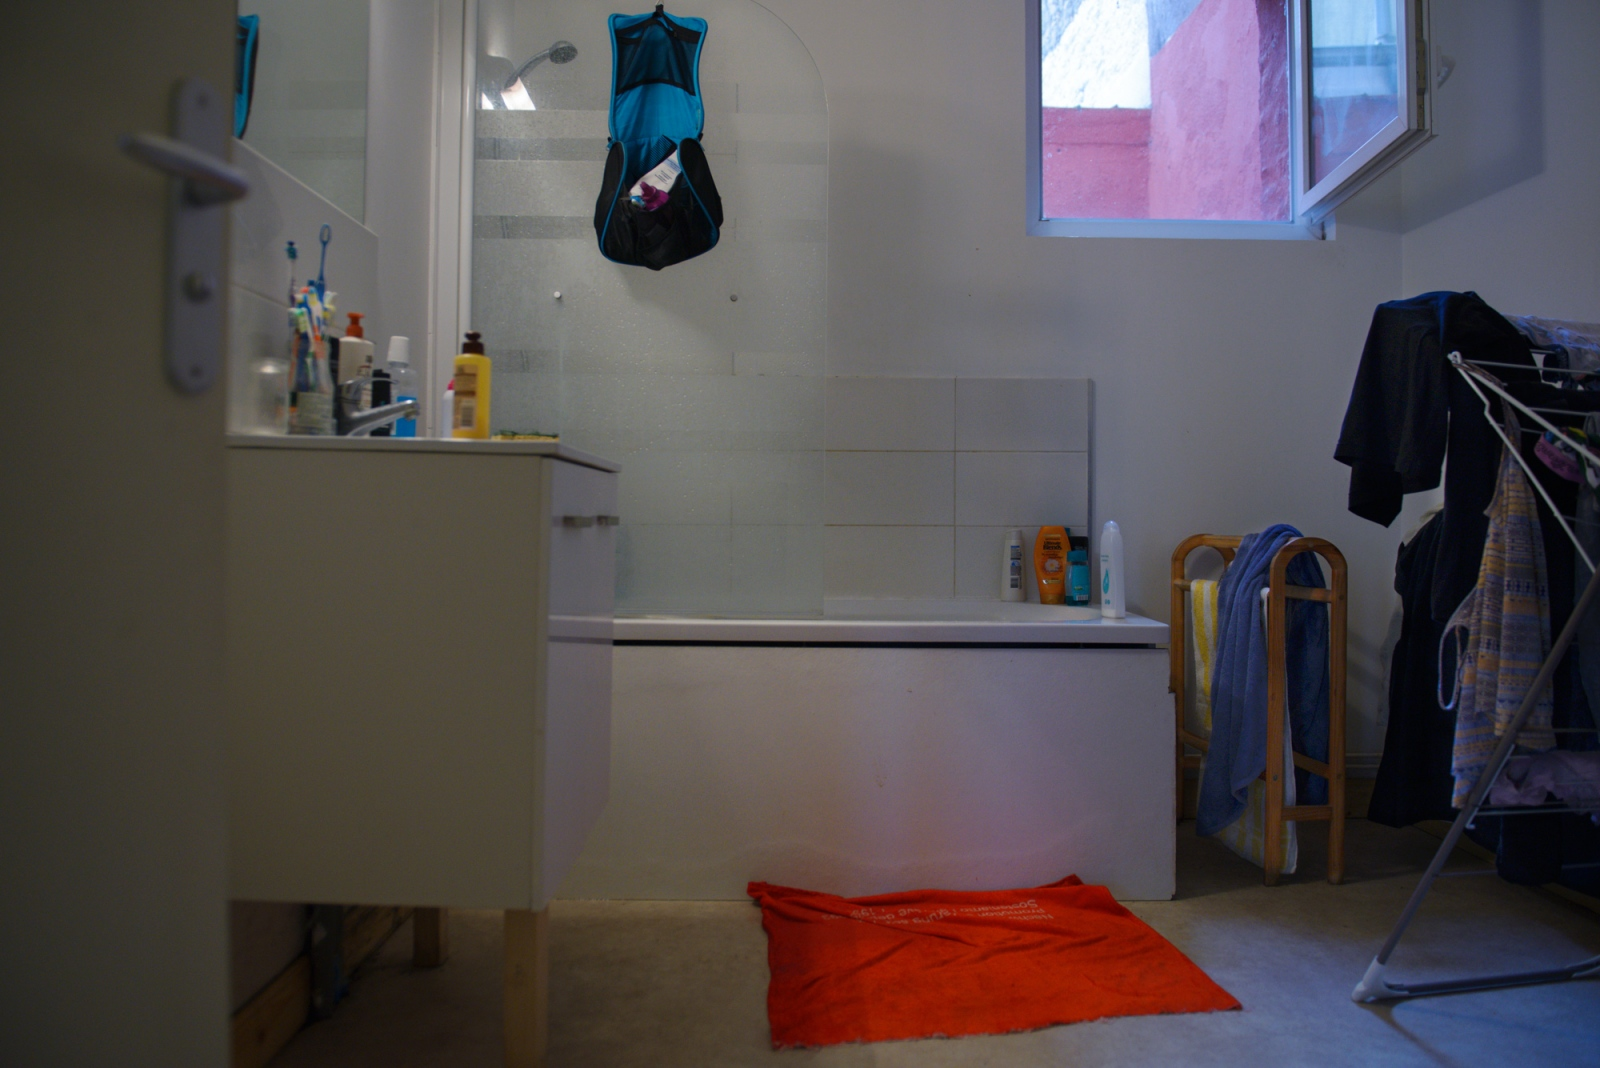 "EN// The owners of this bathroom have been hosting refugees since 2015. Their home provided an average of 14 showers a day, 98 showers a week. ""If I am unable to host homeless migrants in my house, there is no point for me to be in Calais"", says one of the homeowners. Calais, France - February 1, 2018. FR// Les propriétaires de cette salle de bains accueillent des réfugiés depuis 2015. Leur maison fournissait en moyenne 14 douches par jour, 98 douches par semaine. ""Si je ne suis pas en mesure d'accueillir des sans-abri migrants dans ma maison, il ne me vaut pas la peine d'être à Calais"", dit l'une des propriétaires. Calais, France - 1er février 2018."